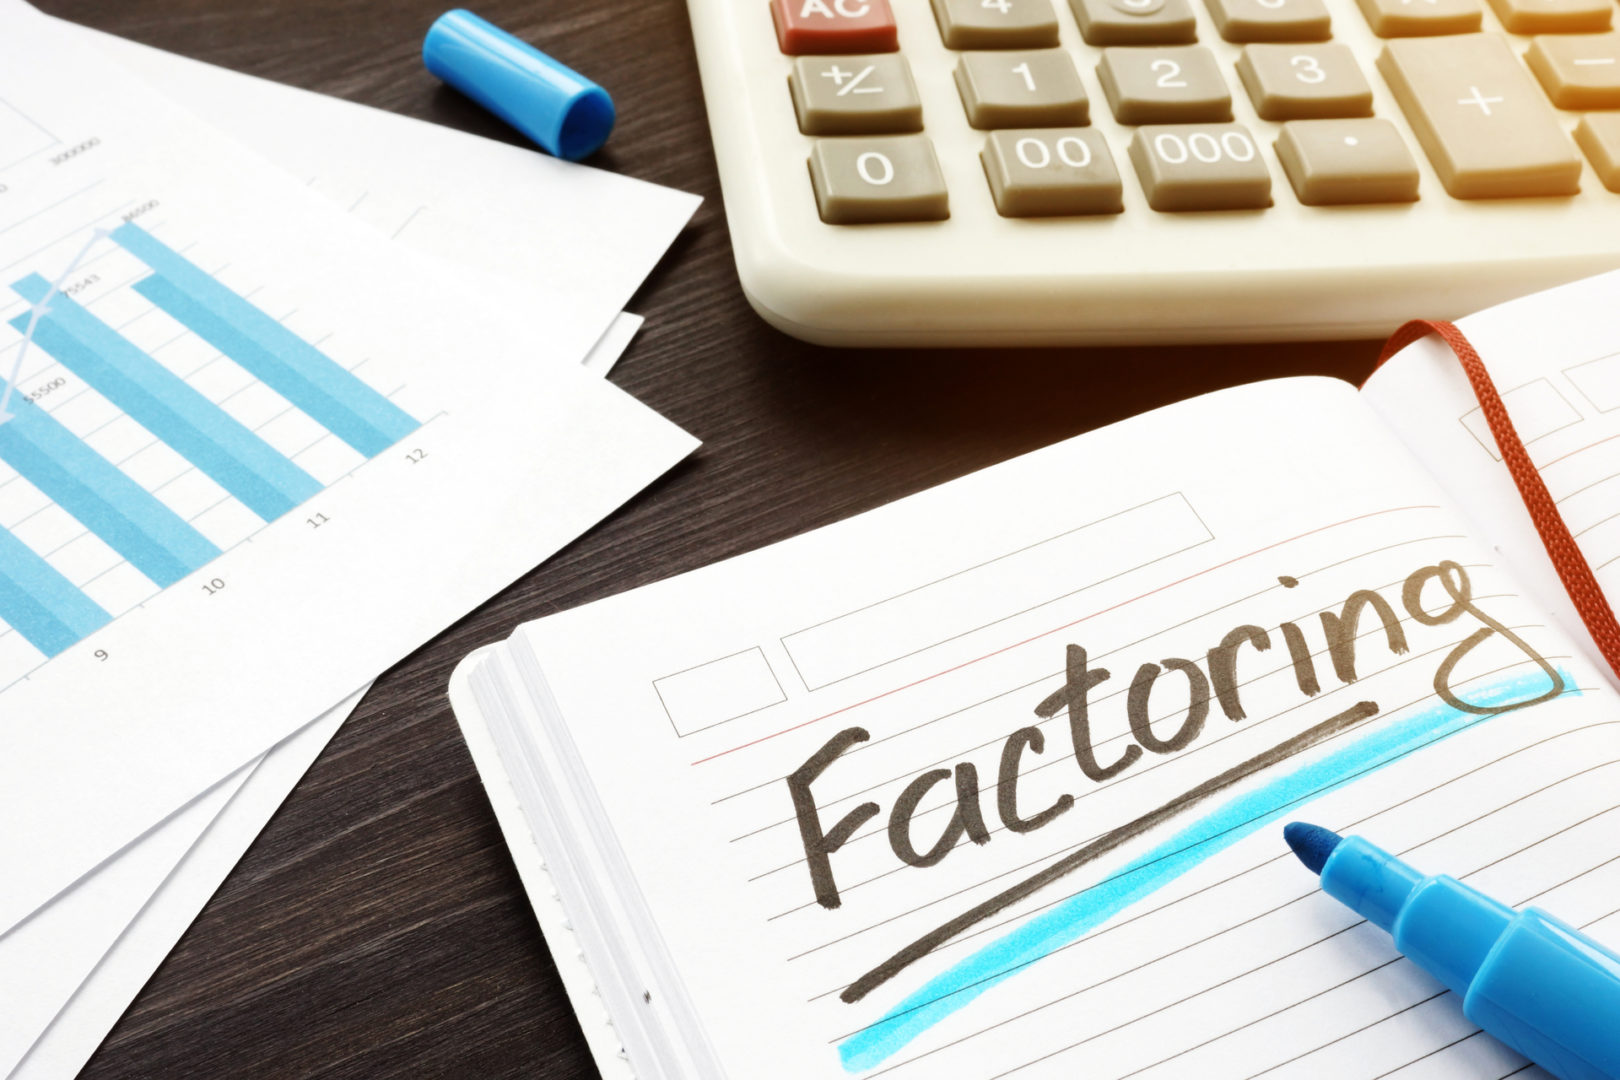 Factoring written on a note and documents.